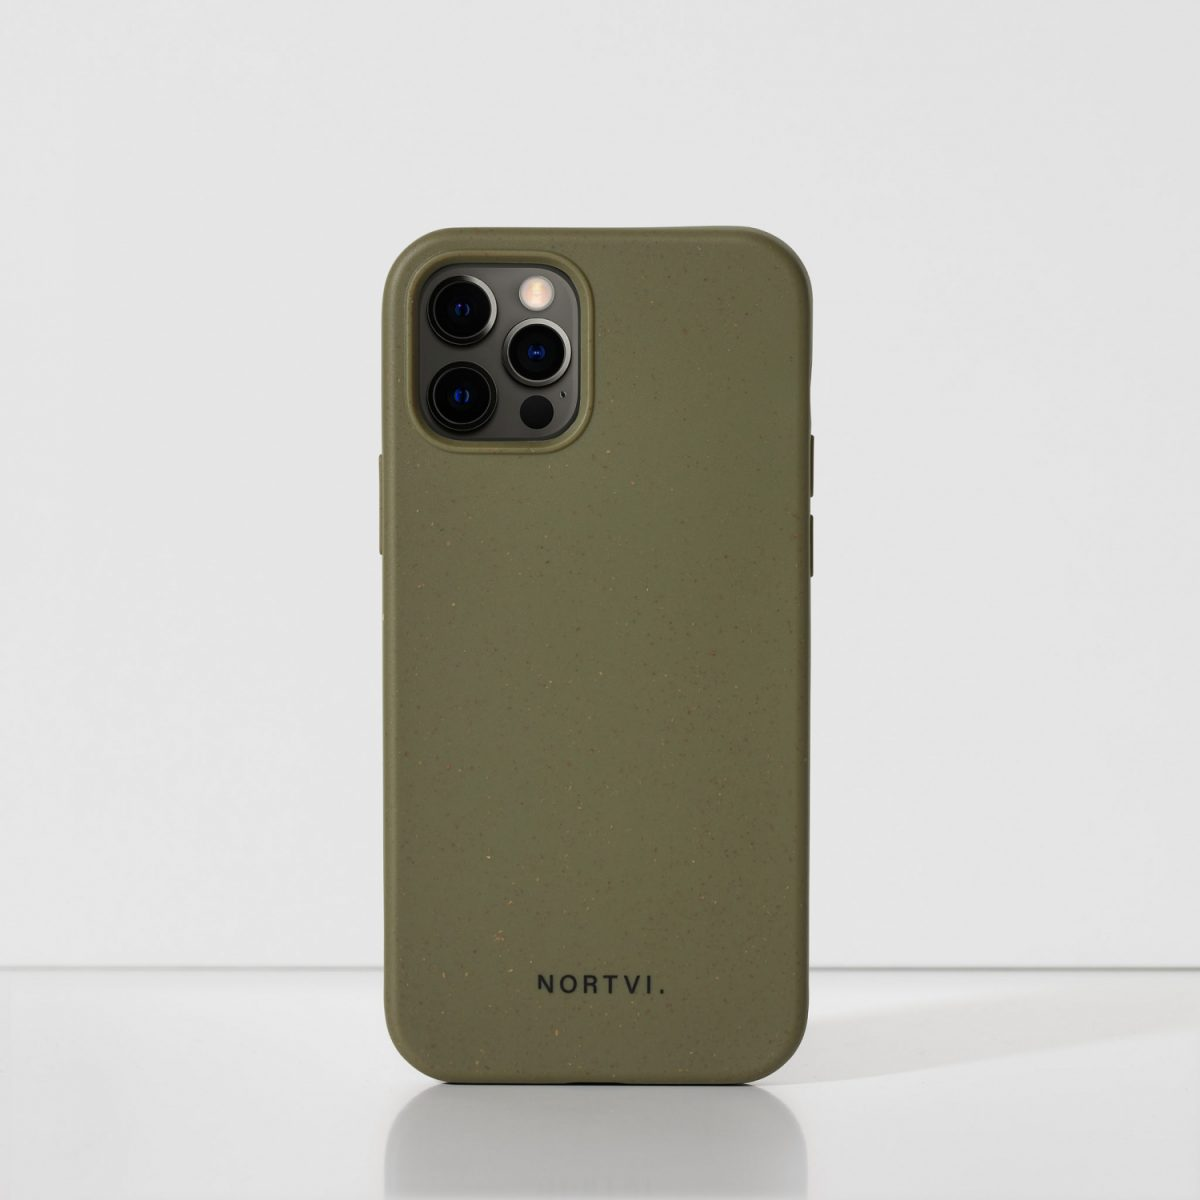 NORTVI green phone case for iPhone 11 case